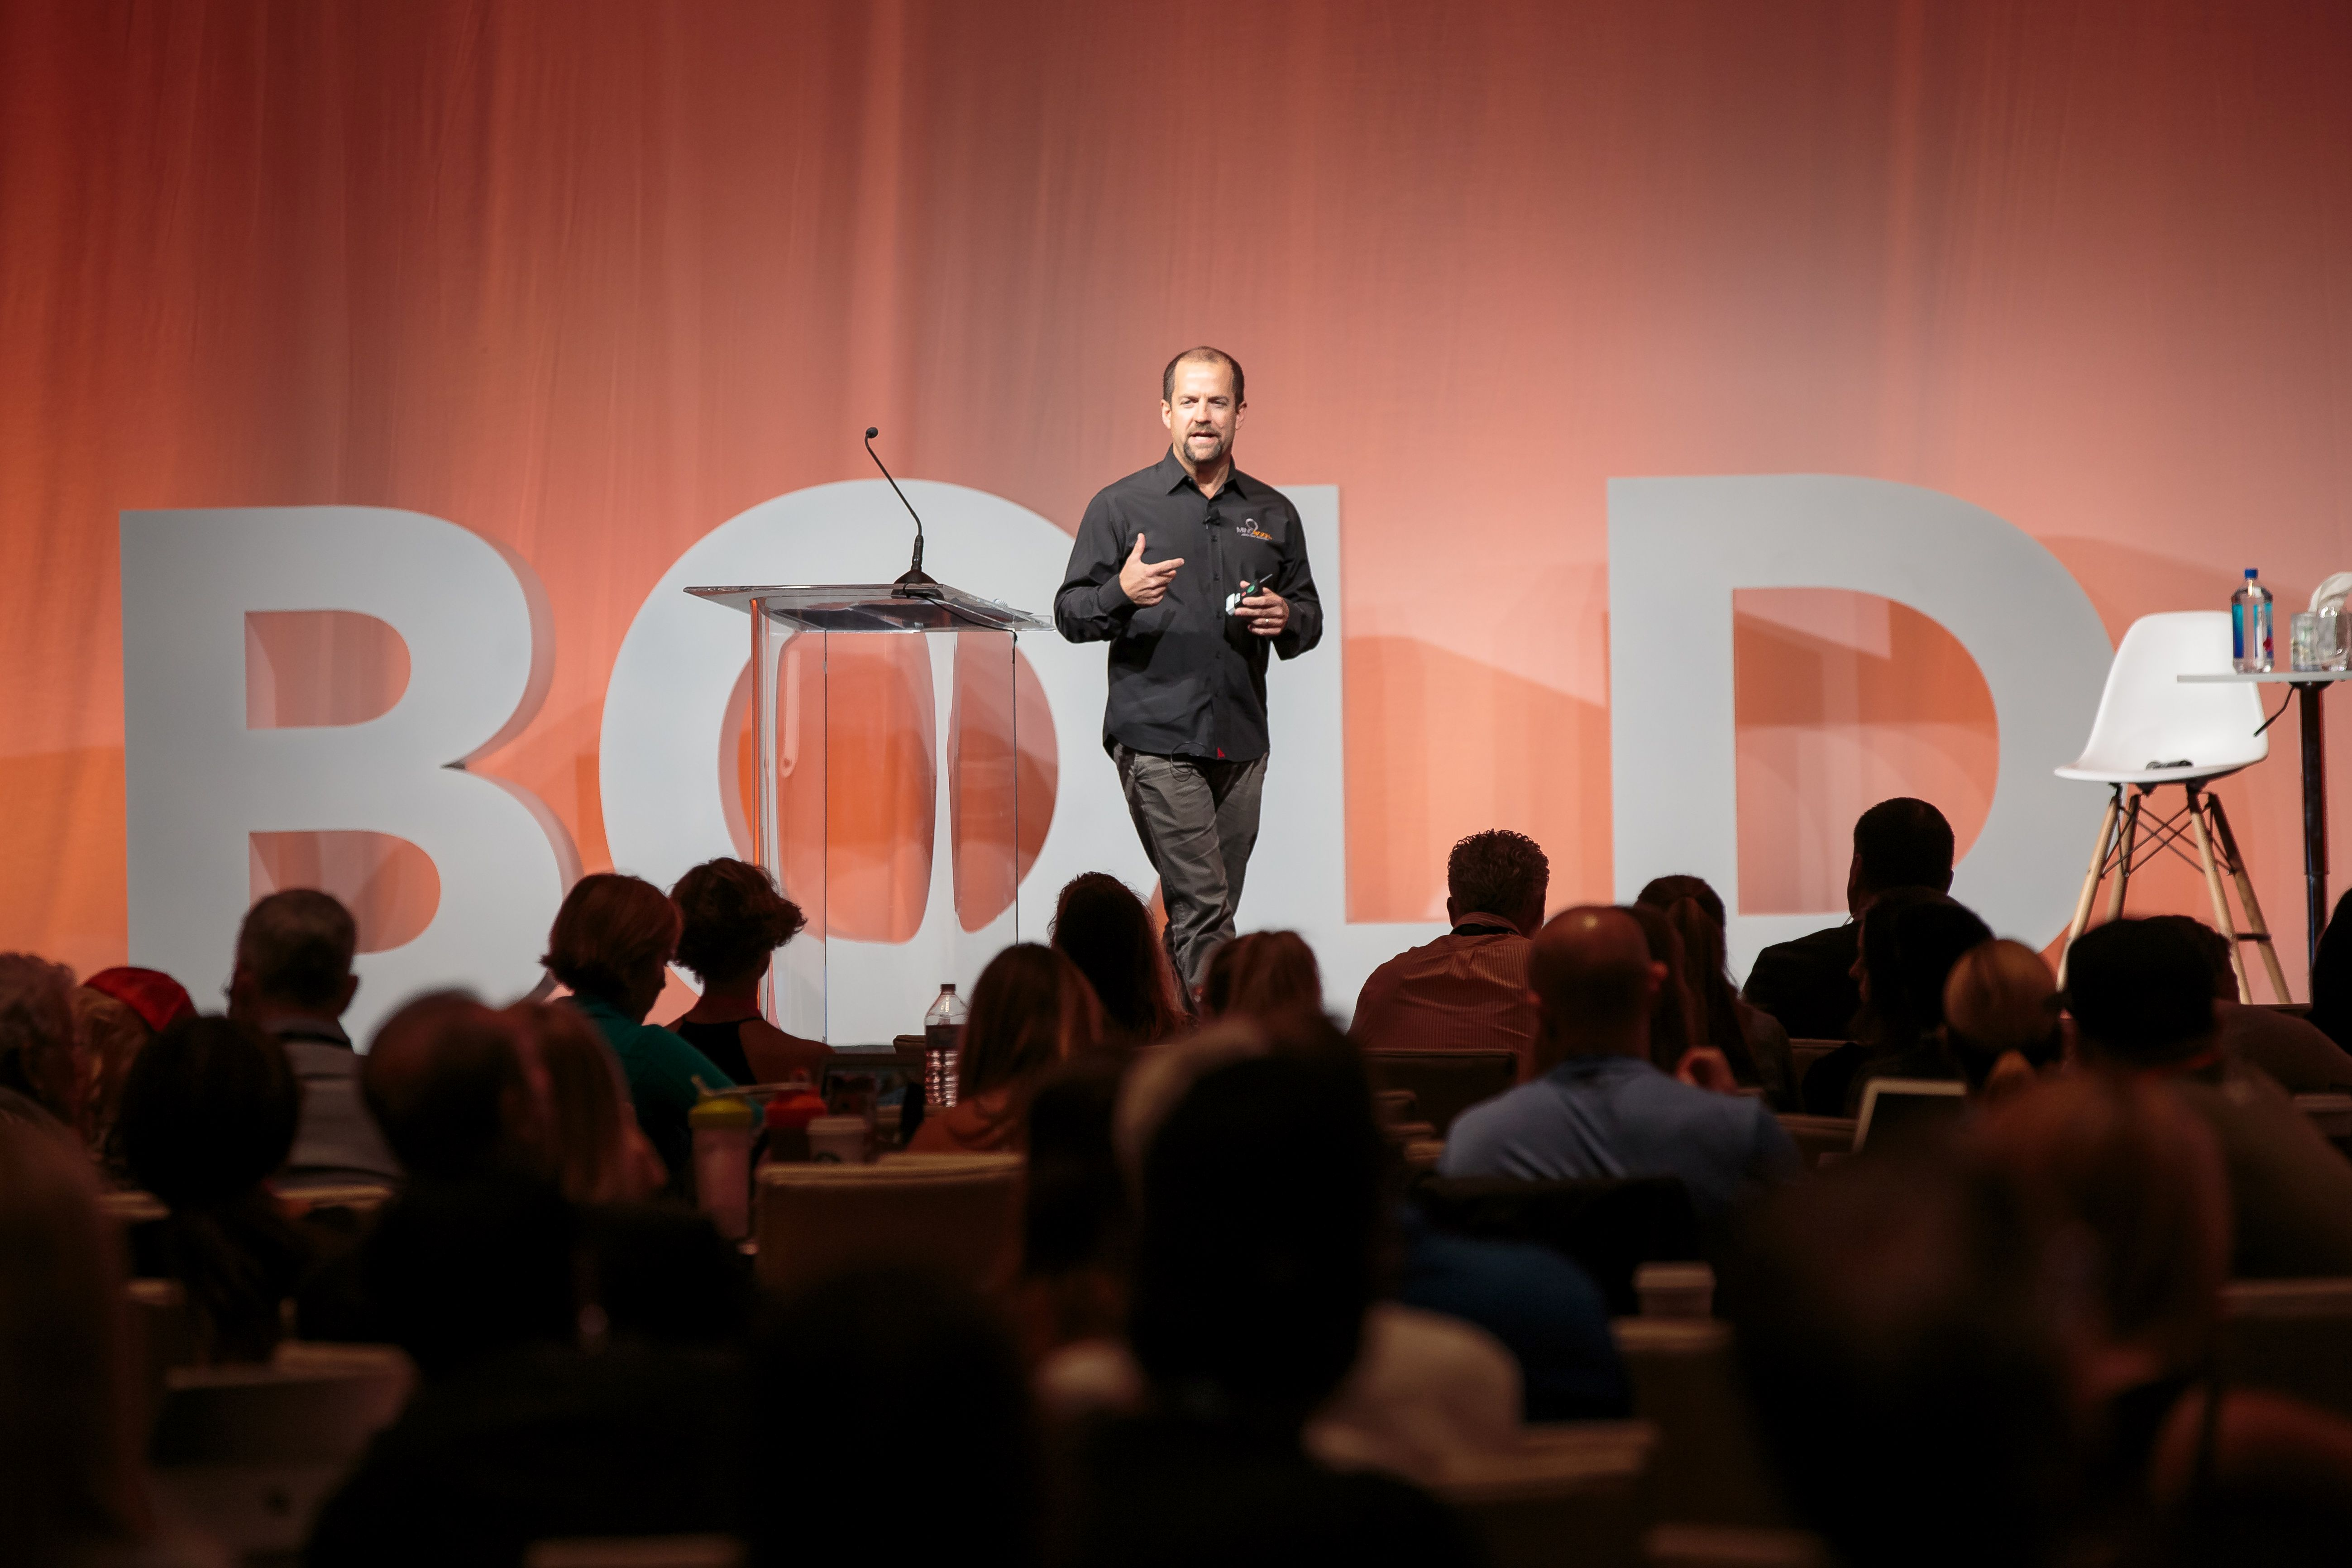 Mindbody CEO Rick Stollmeyer addresses attendees at the Mindbody BOLD conference.